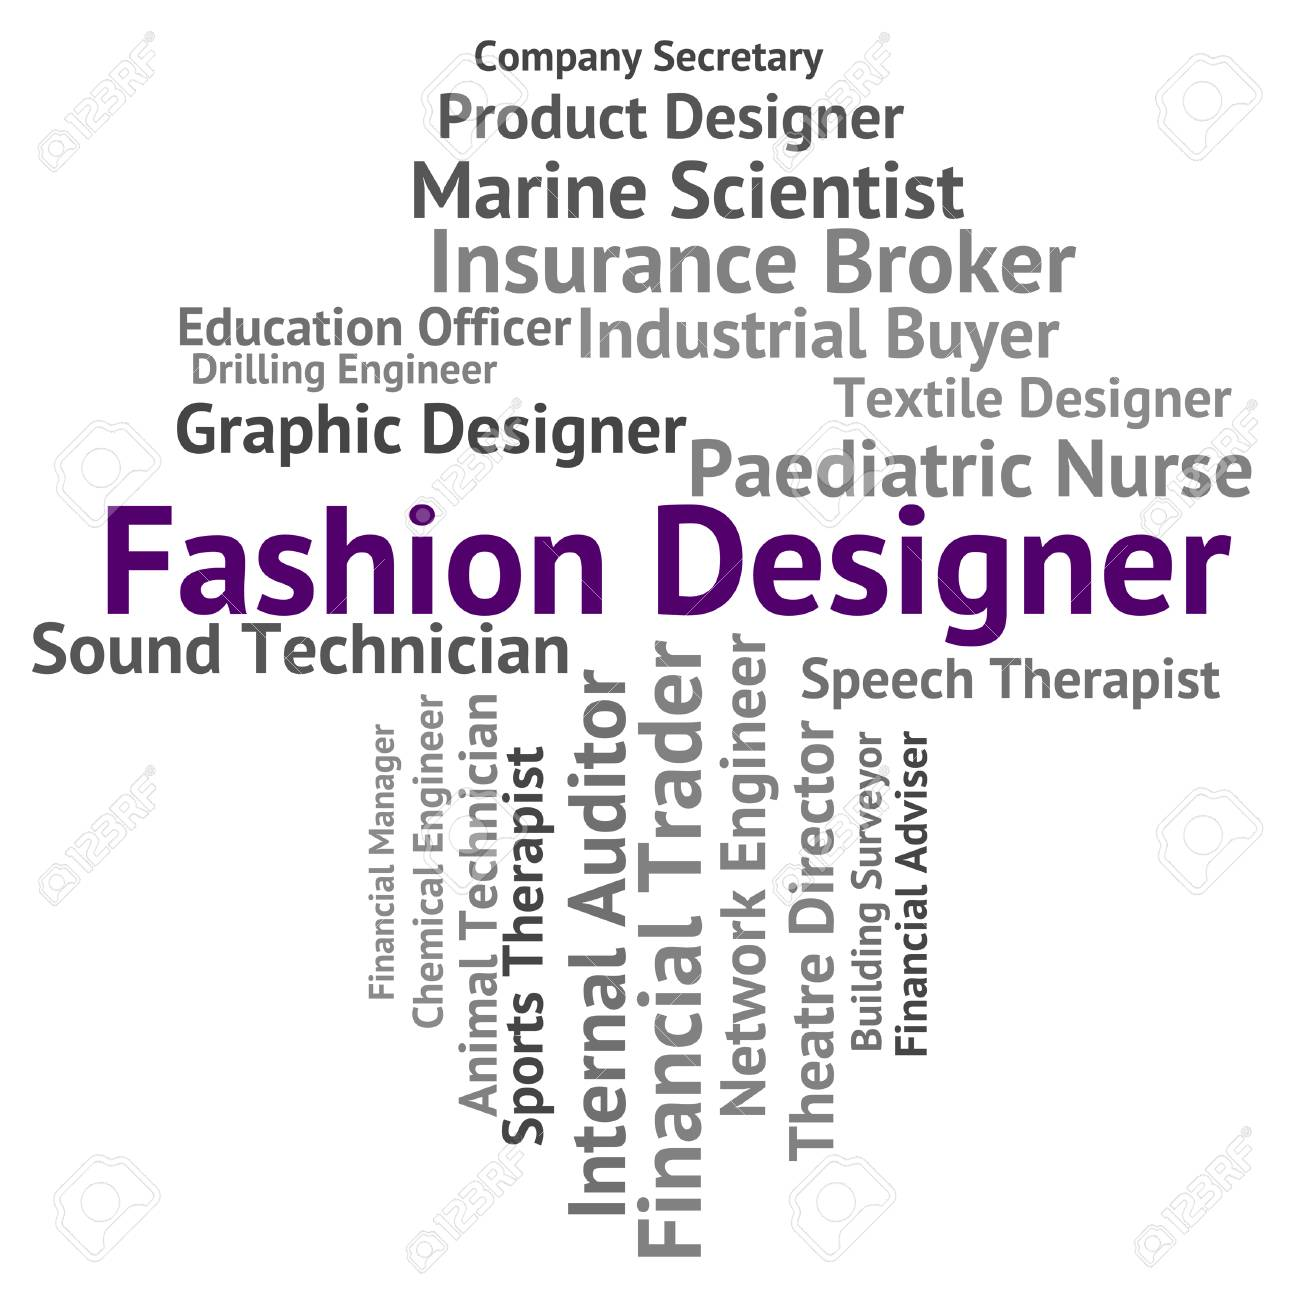 Fashion Designer Indicating Word Recruitment And Employee Stock Photo Picture And Royalty Free Image Image 43384333